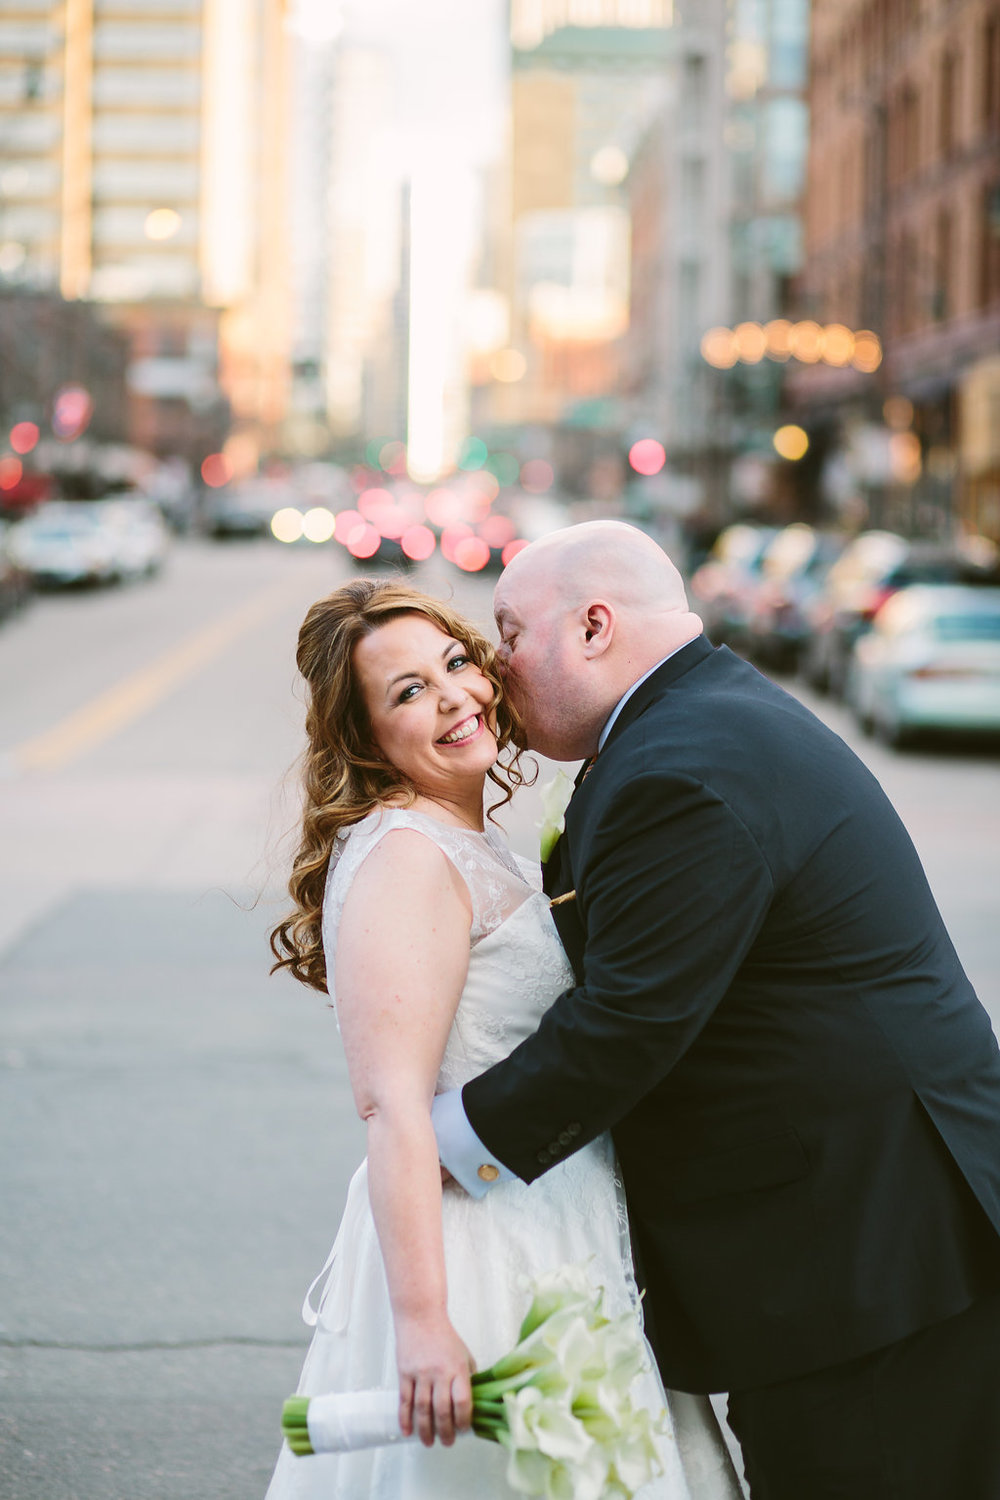 Bridalbliss.com | Denver Wedding | Colorado Event Planning and Design | Megan Alvarez Photography